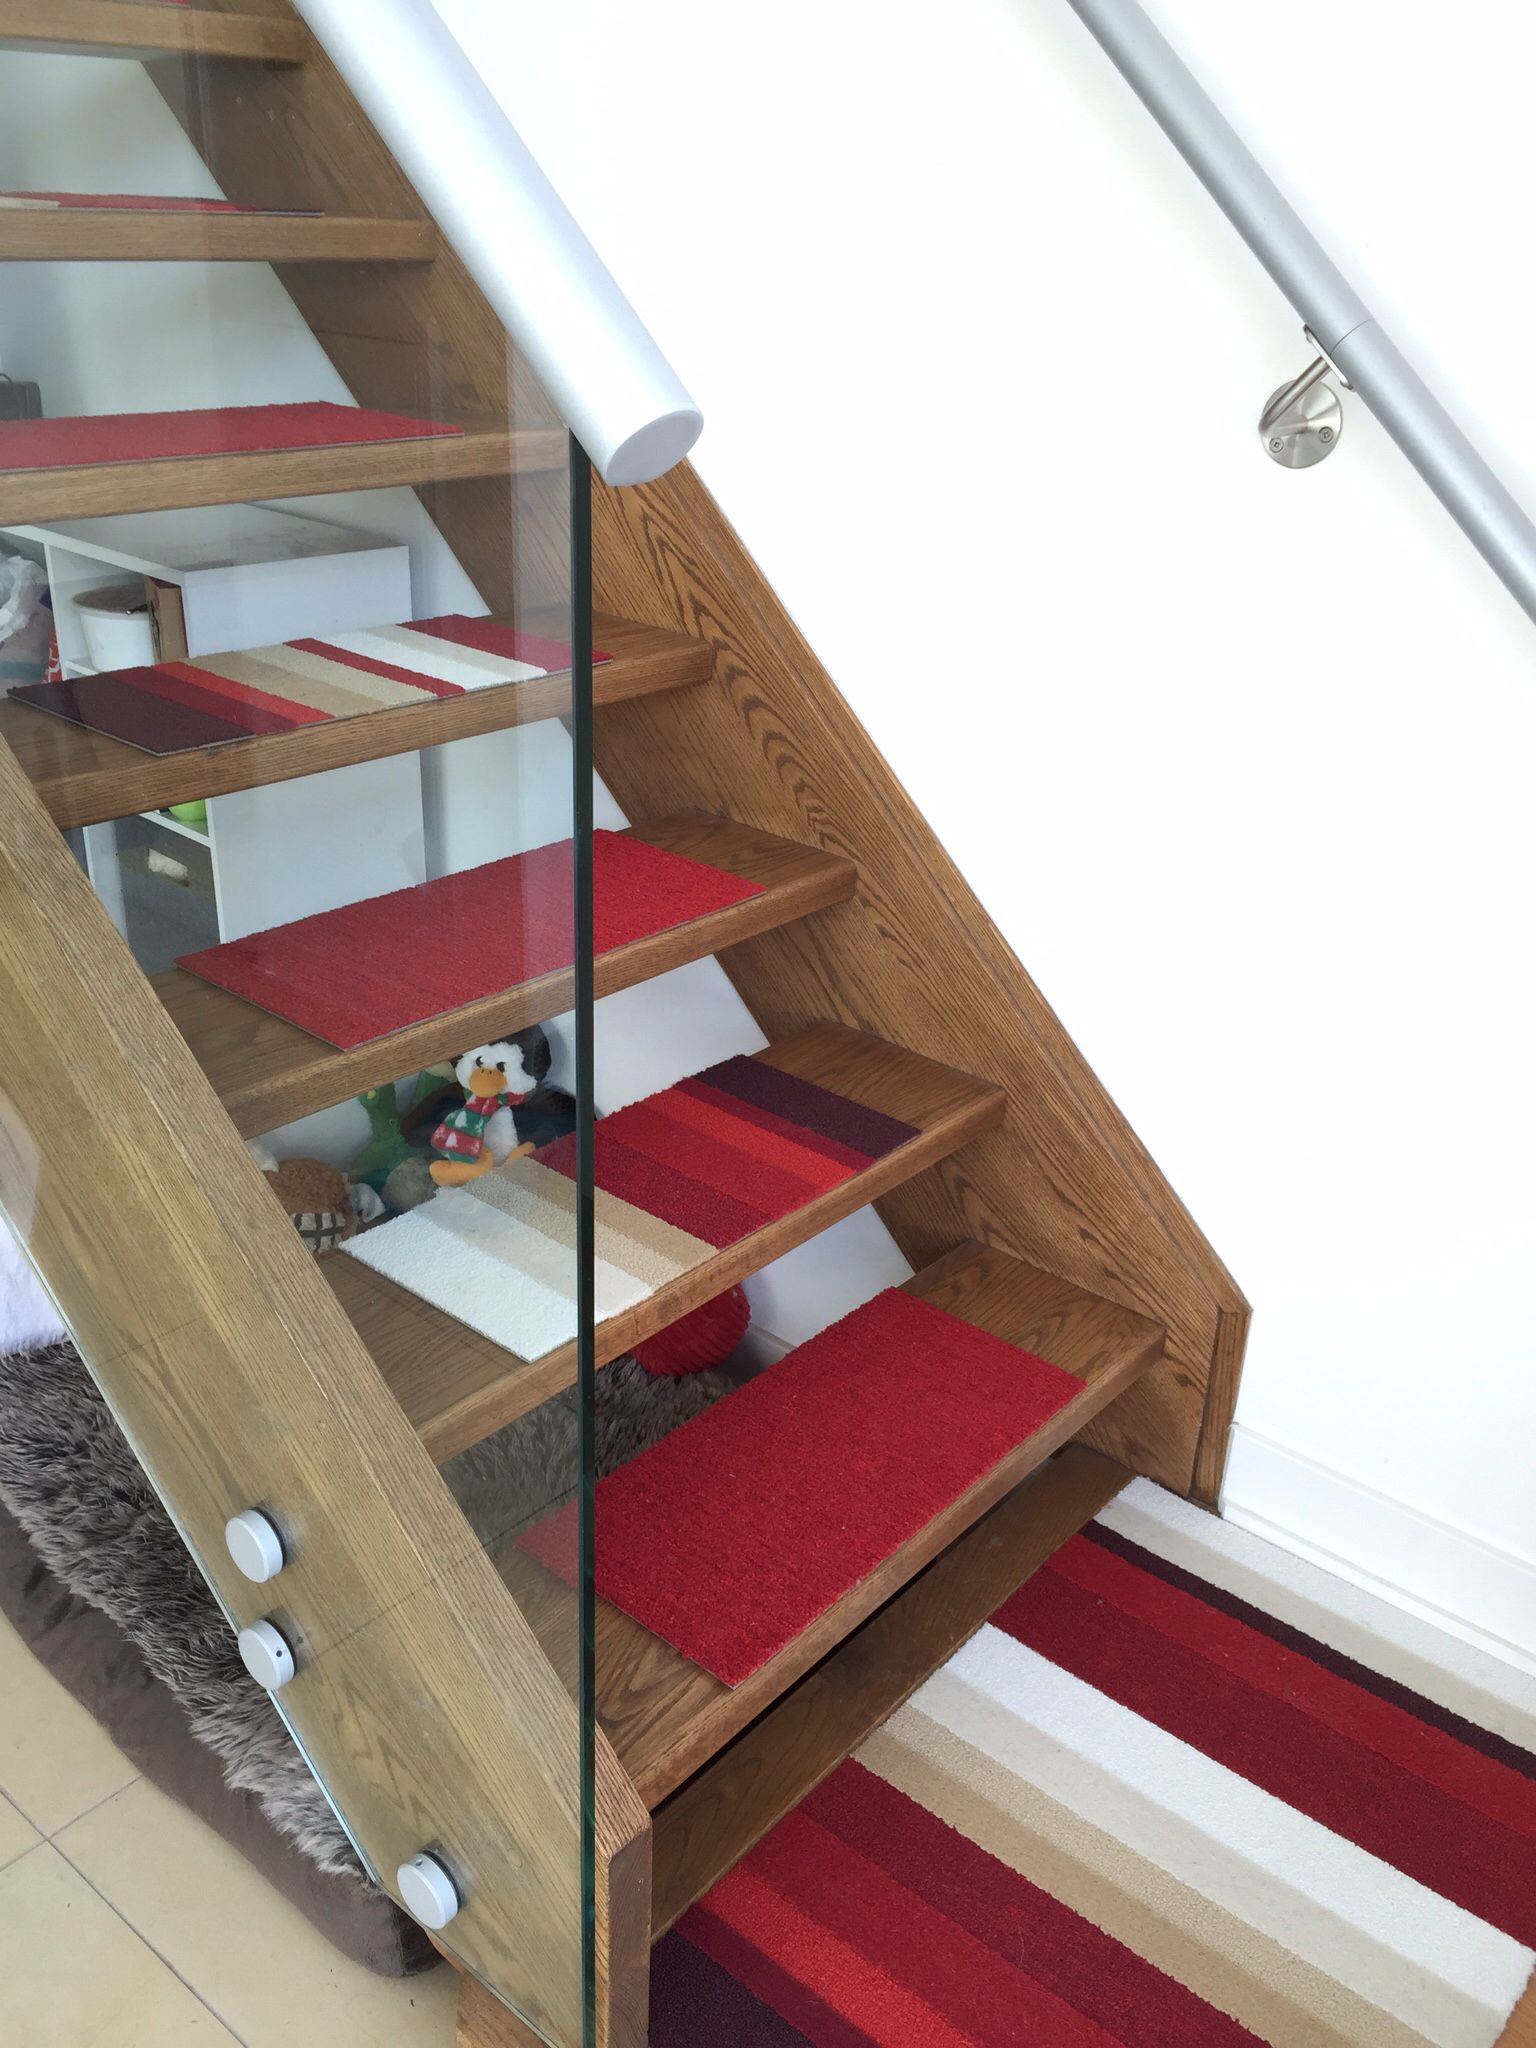 diy stair treads from flor carpet tiles